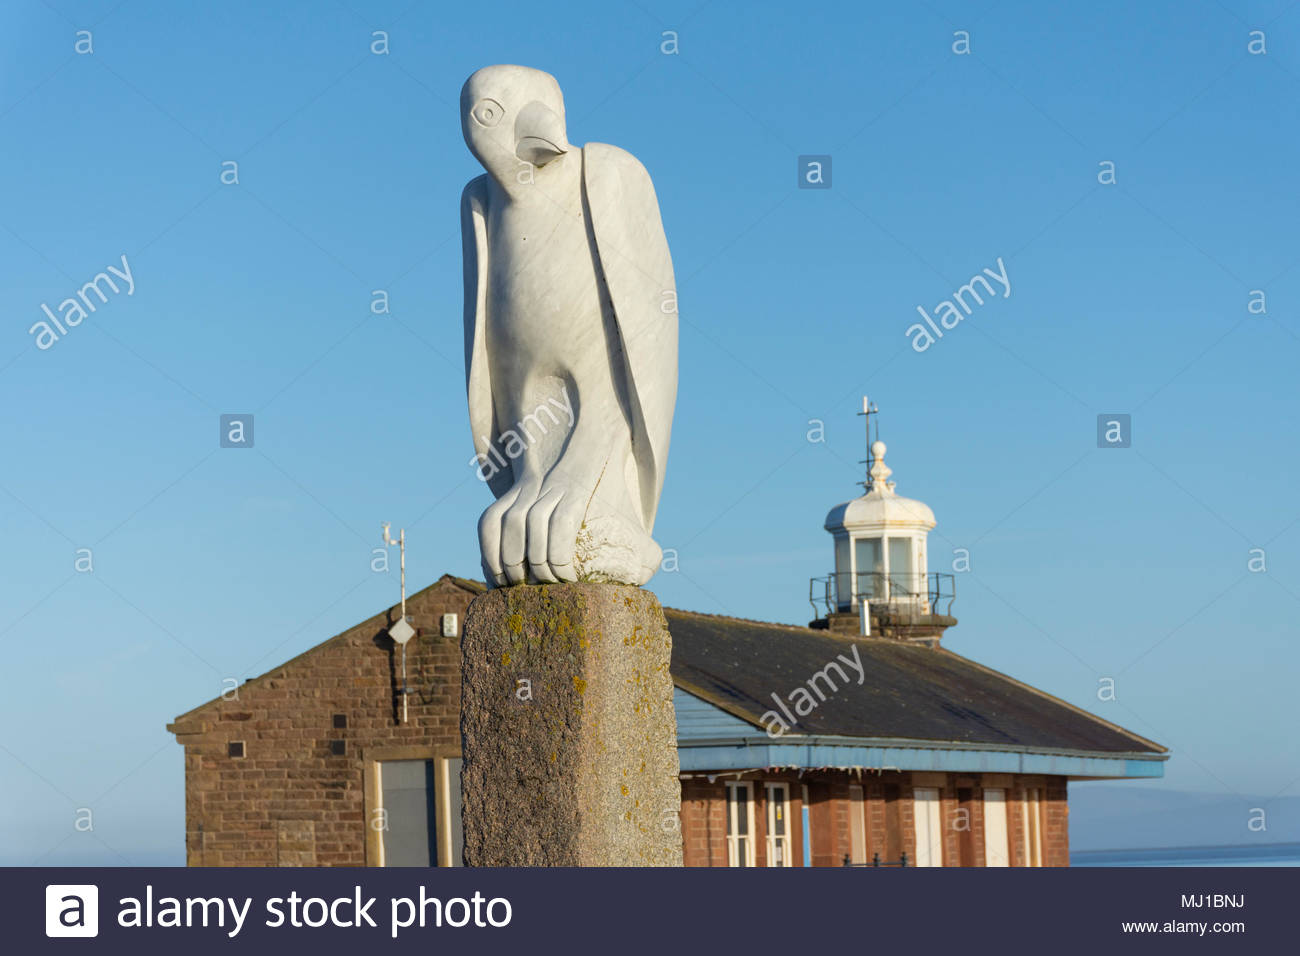 A bird (sculpture) keeps a watchful eye near to the Stone Jetty in Morecambe, Lancashire, UK with the lighthouse in the background Stock Photo